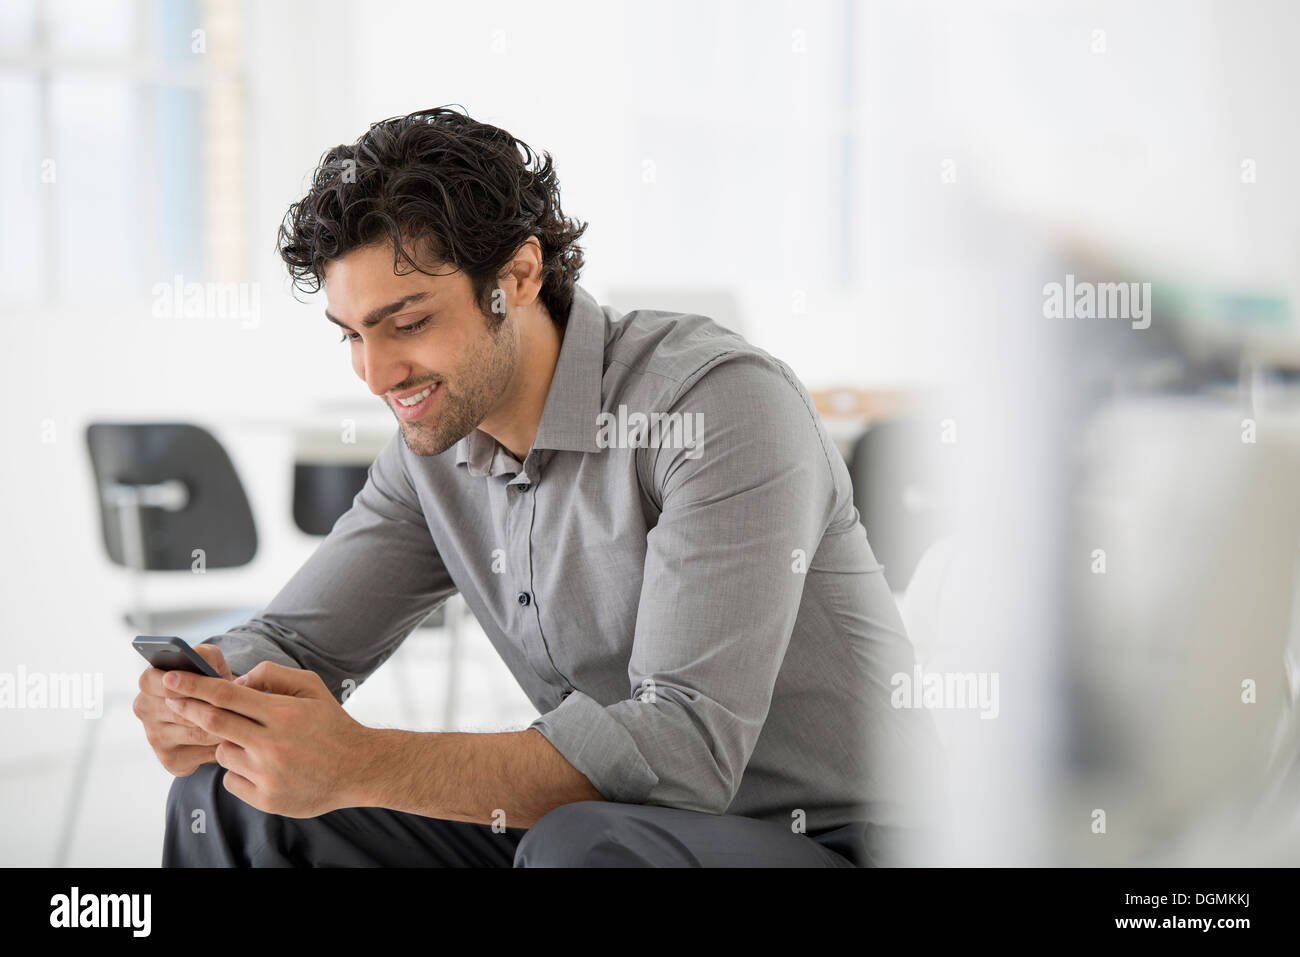 Business. A man seated looking at the screen on his smart phone. - Stock Image